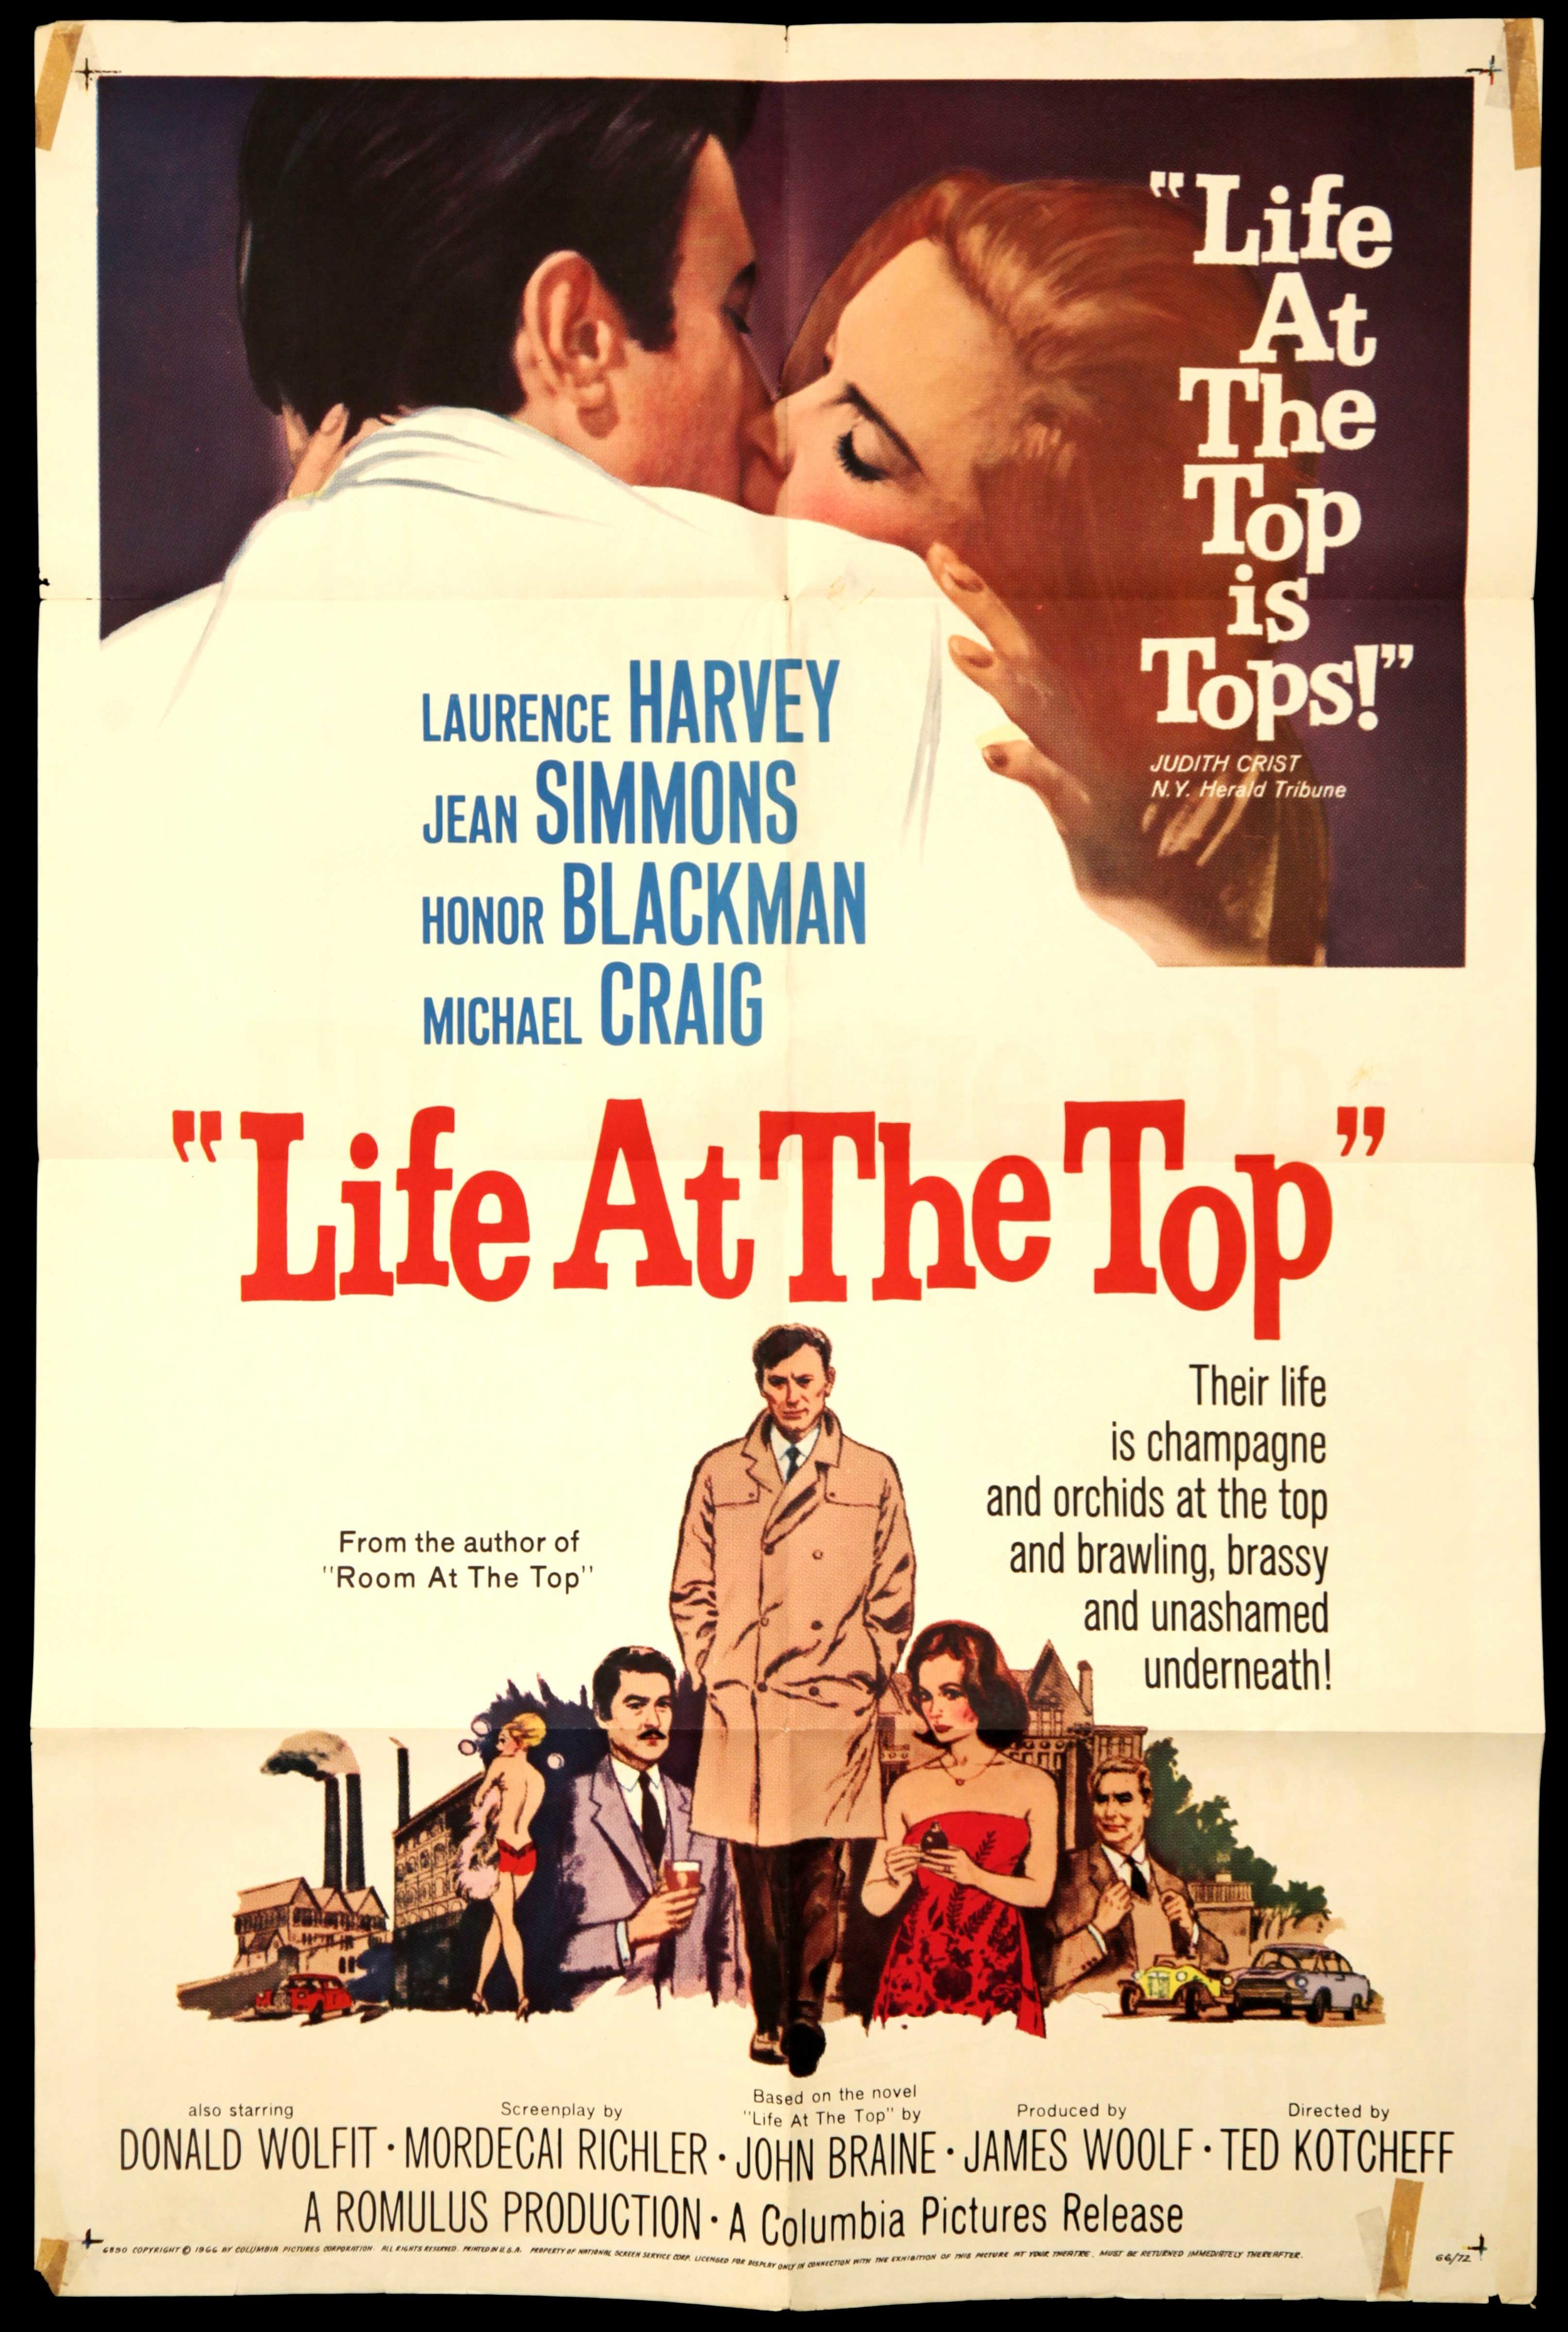 Life At The Top (1965)